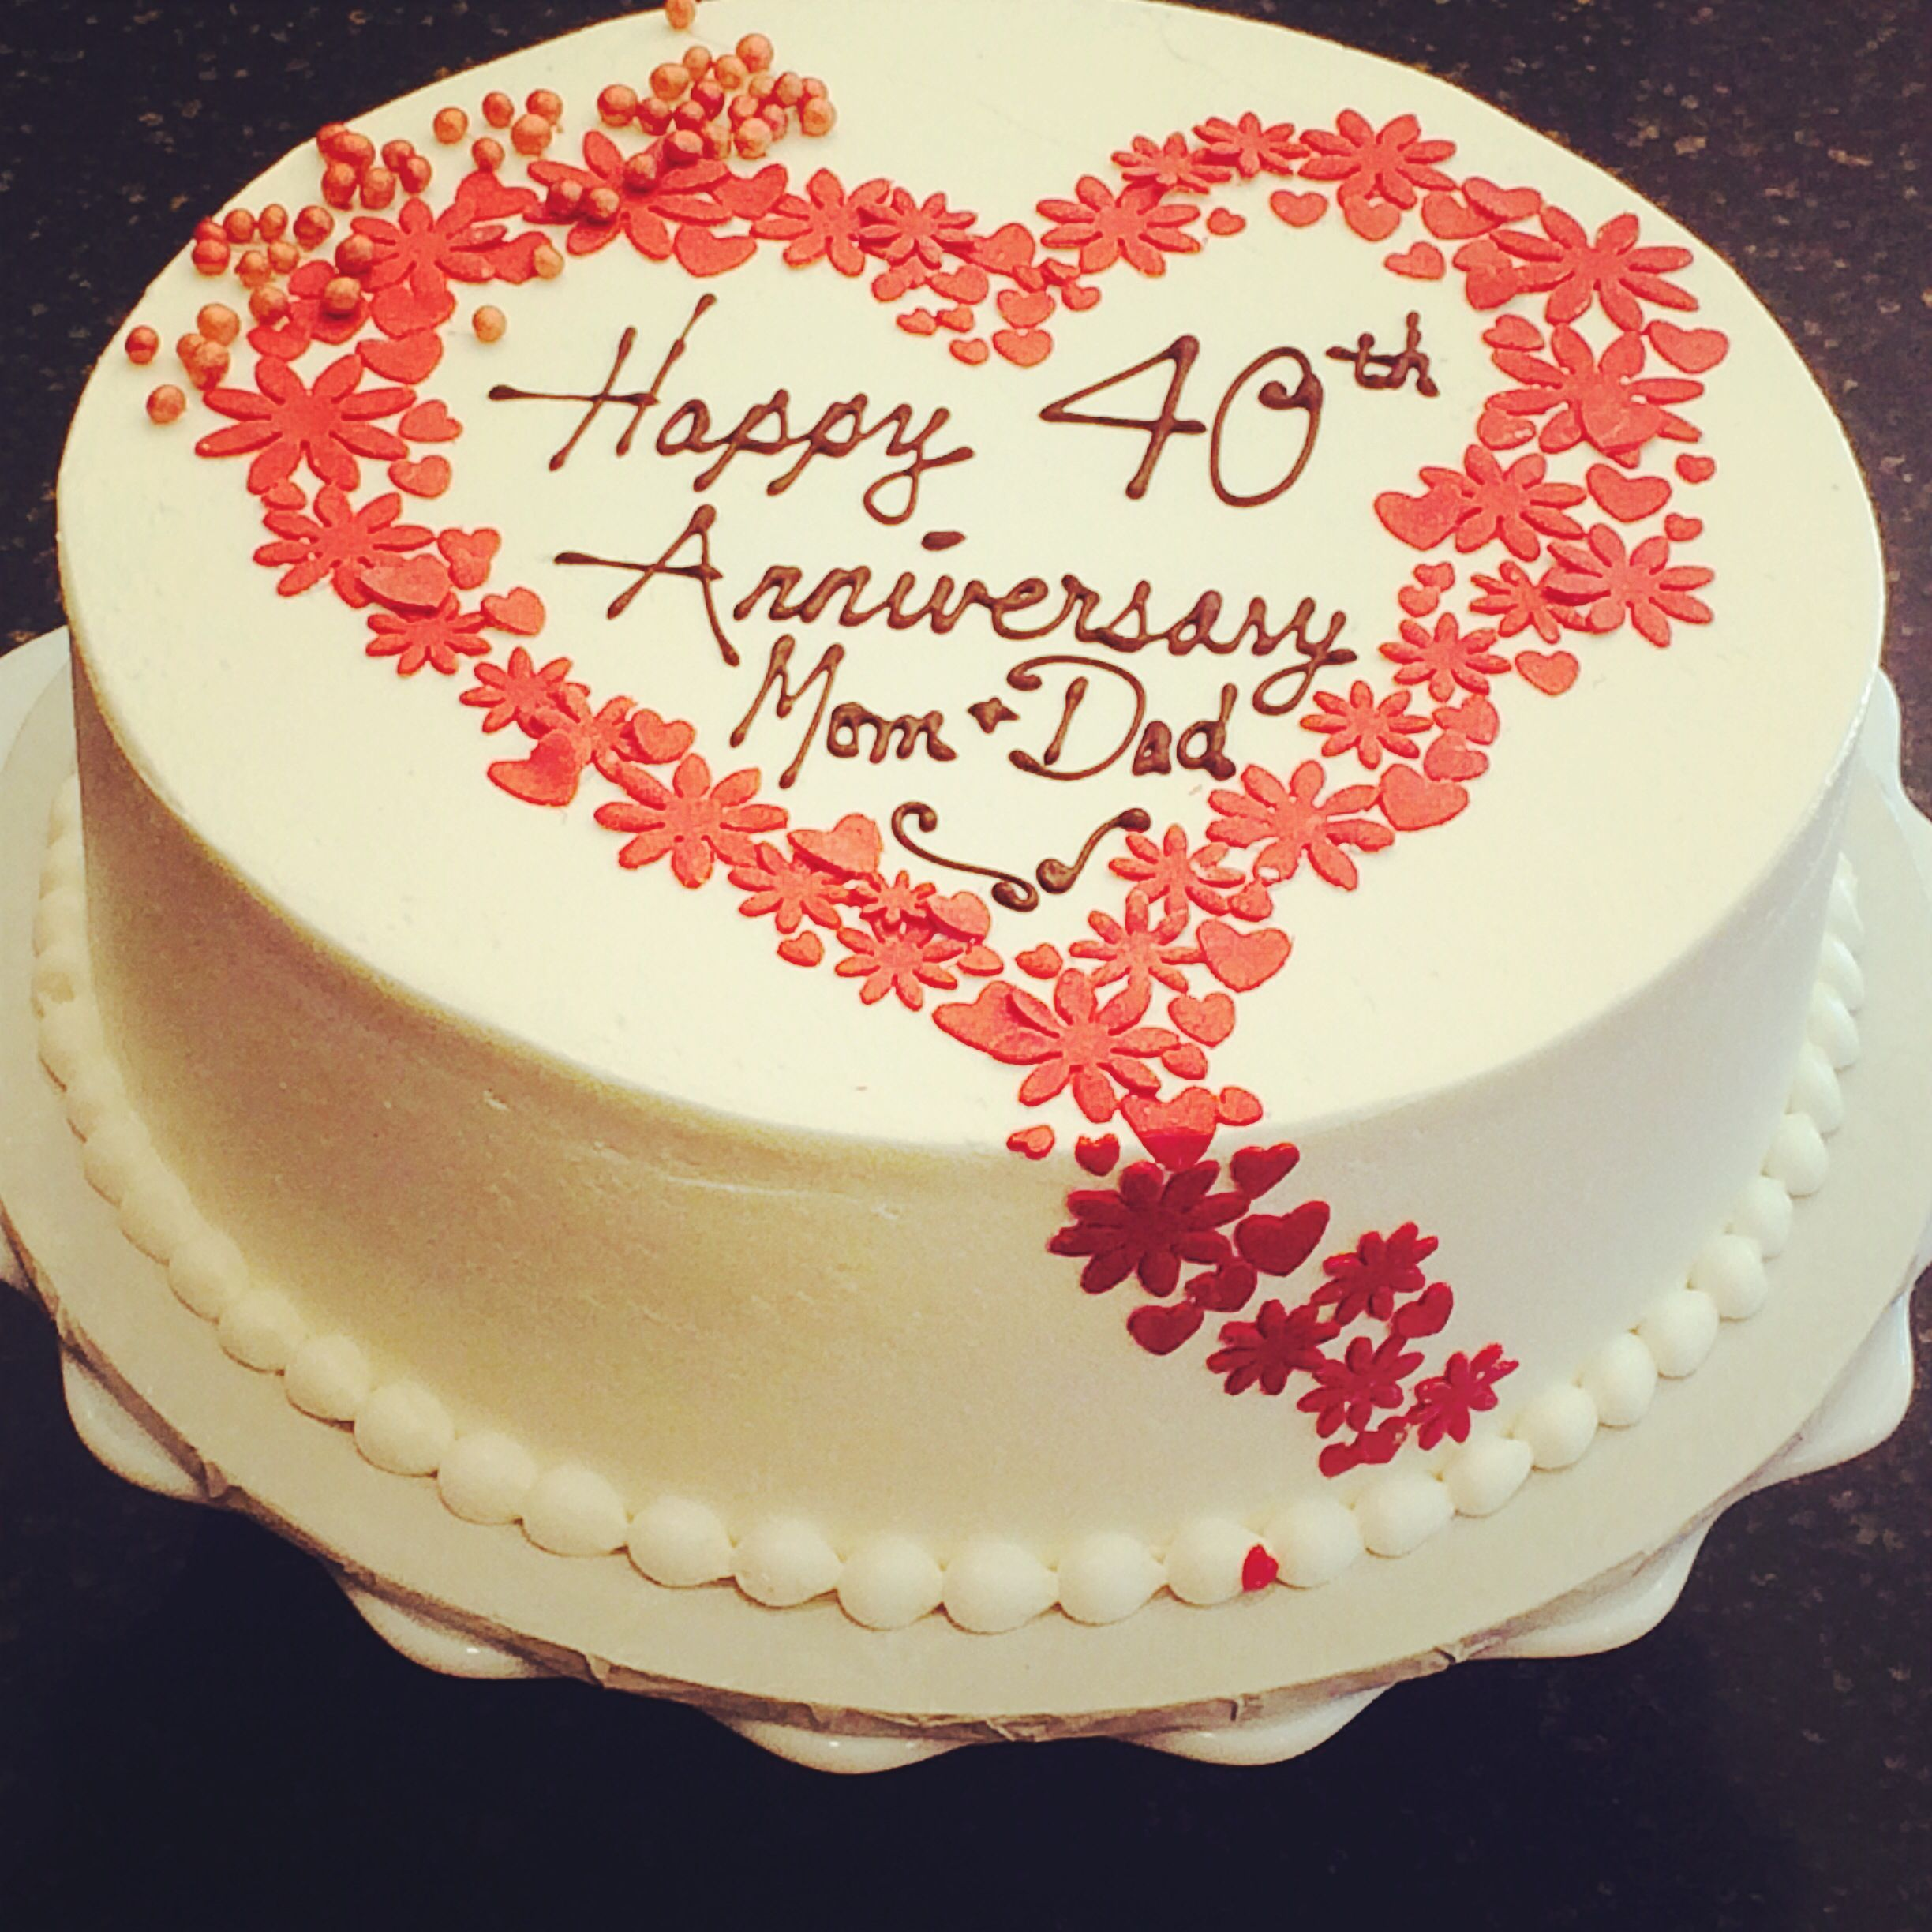 Red Velvet Ruby 40th Anniversary Cake Newleafpastries Com 40th Anniversary Cakes 40th Wedding Anniversary Cake Wedding Anniversary Cakes